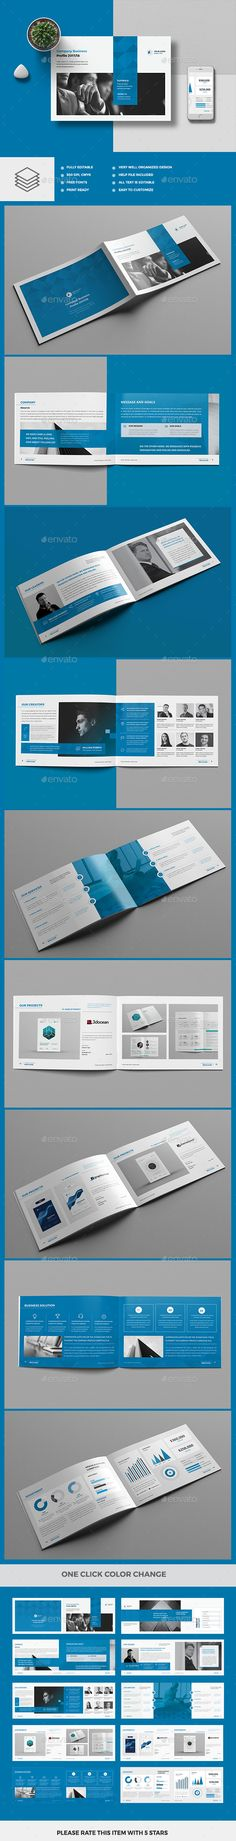 Square Company Profile Brochure Square company, Company profile - corporate profile template